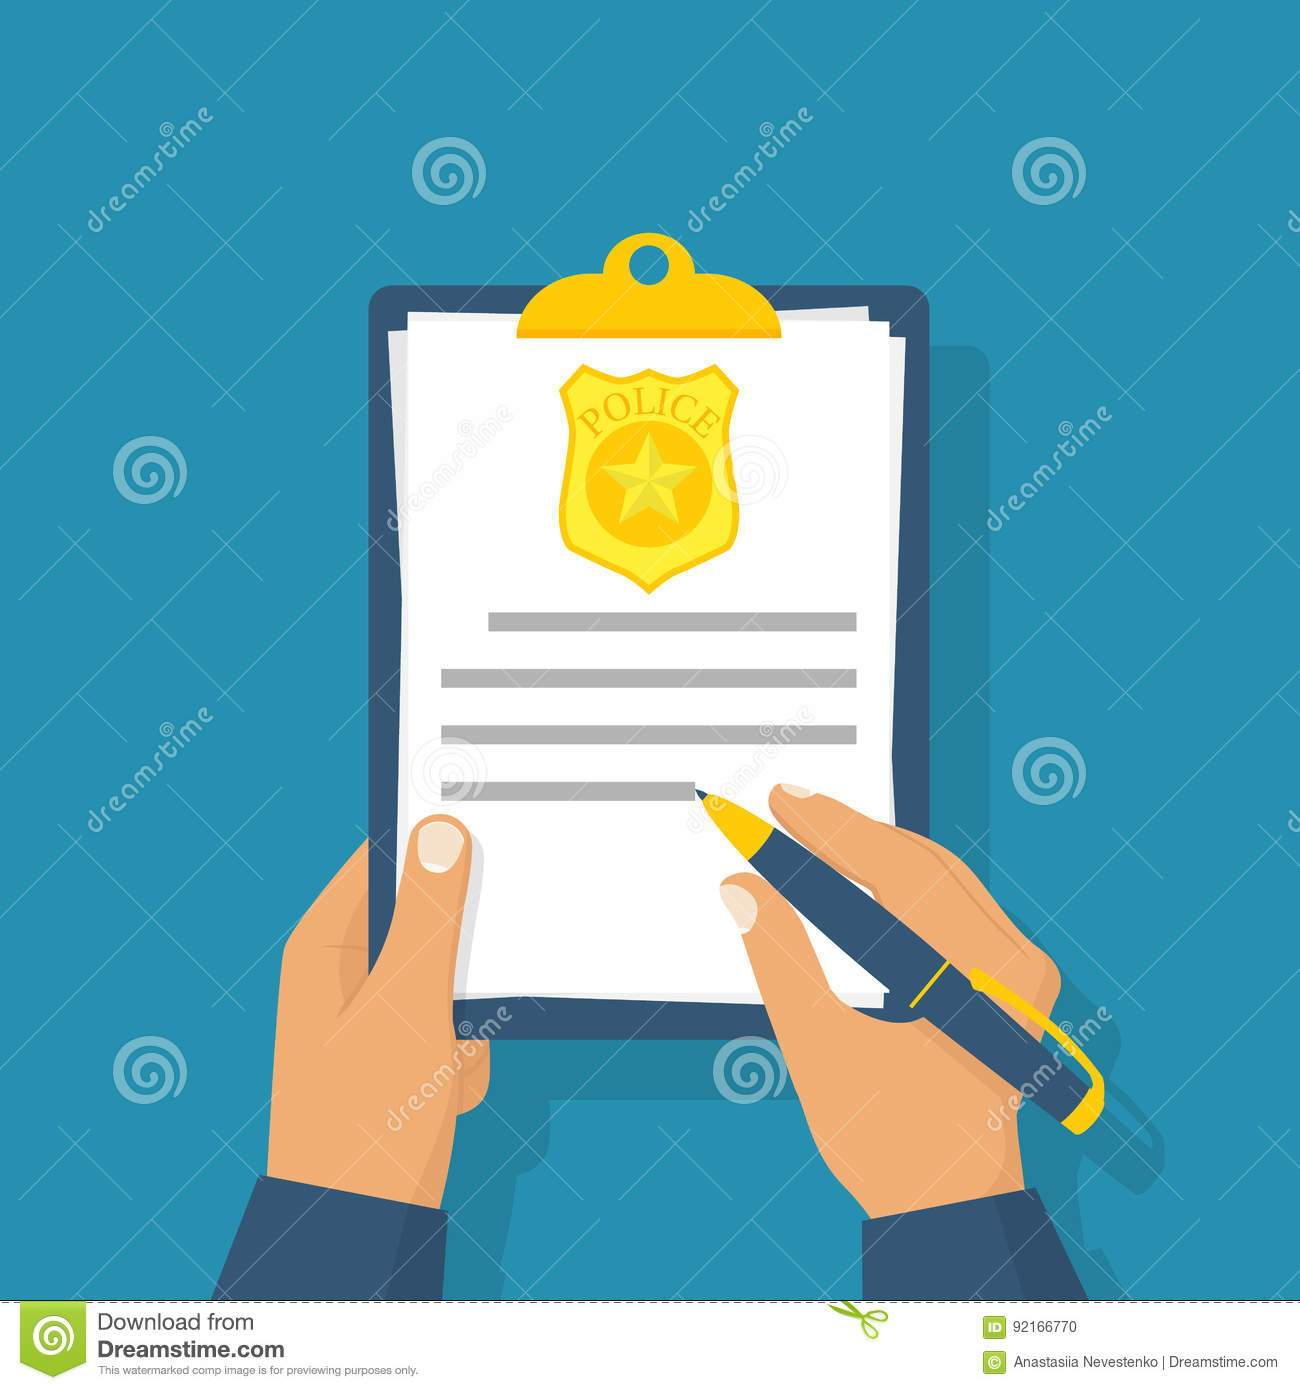 Police report clipart graphic stock Police report clipart 6 » Clipart Portal graphic stock